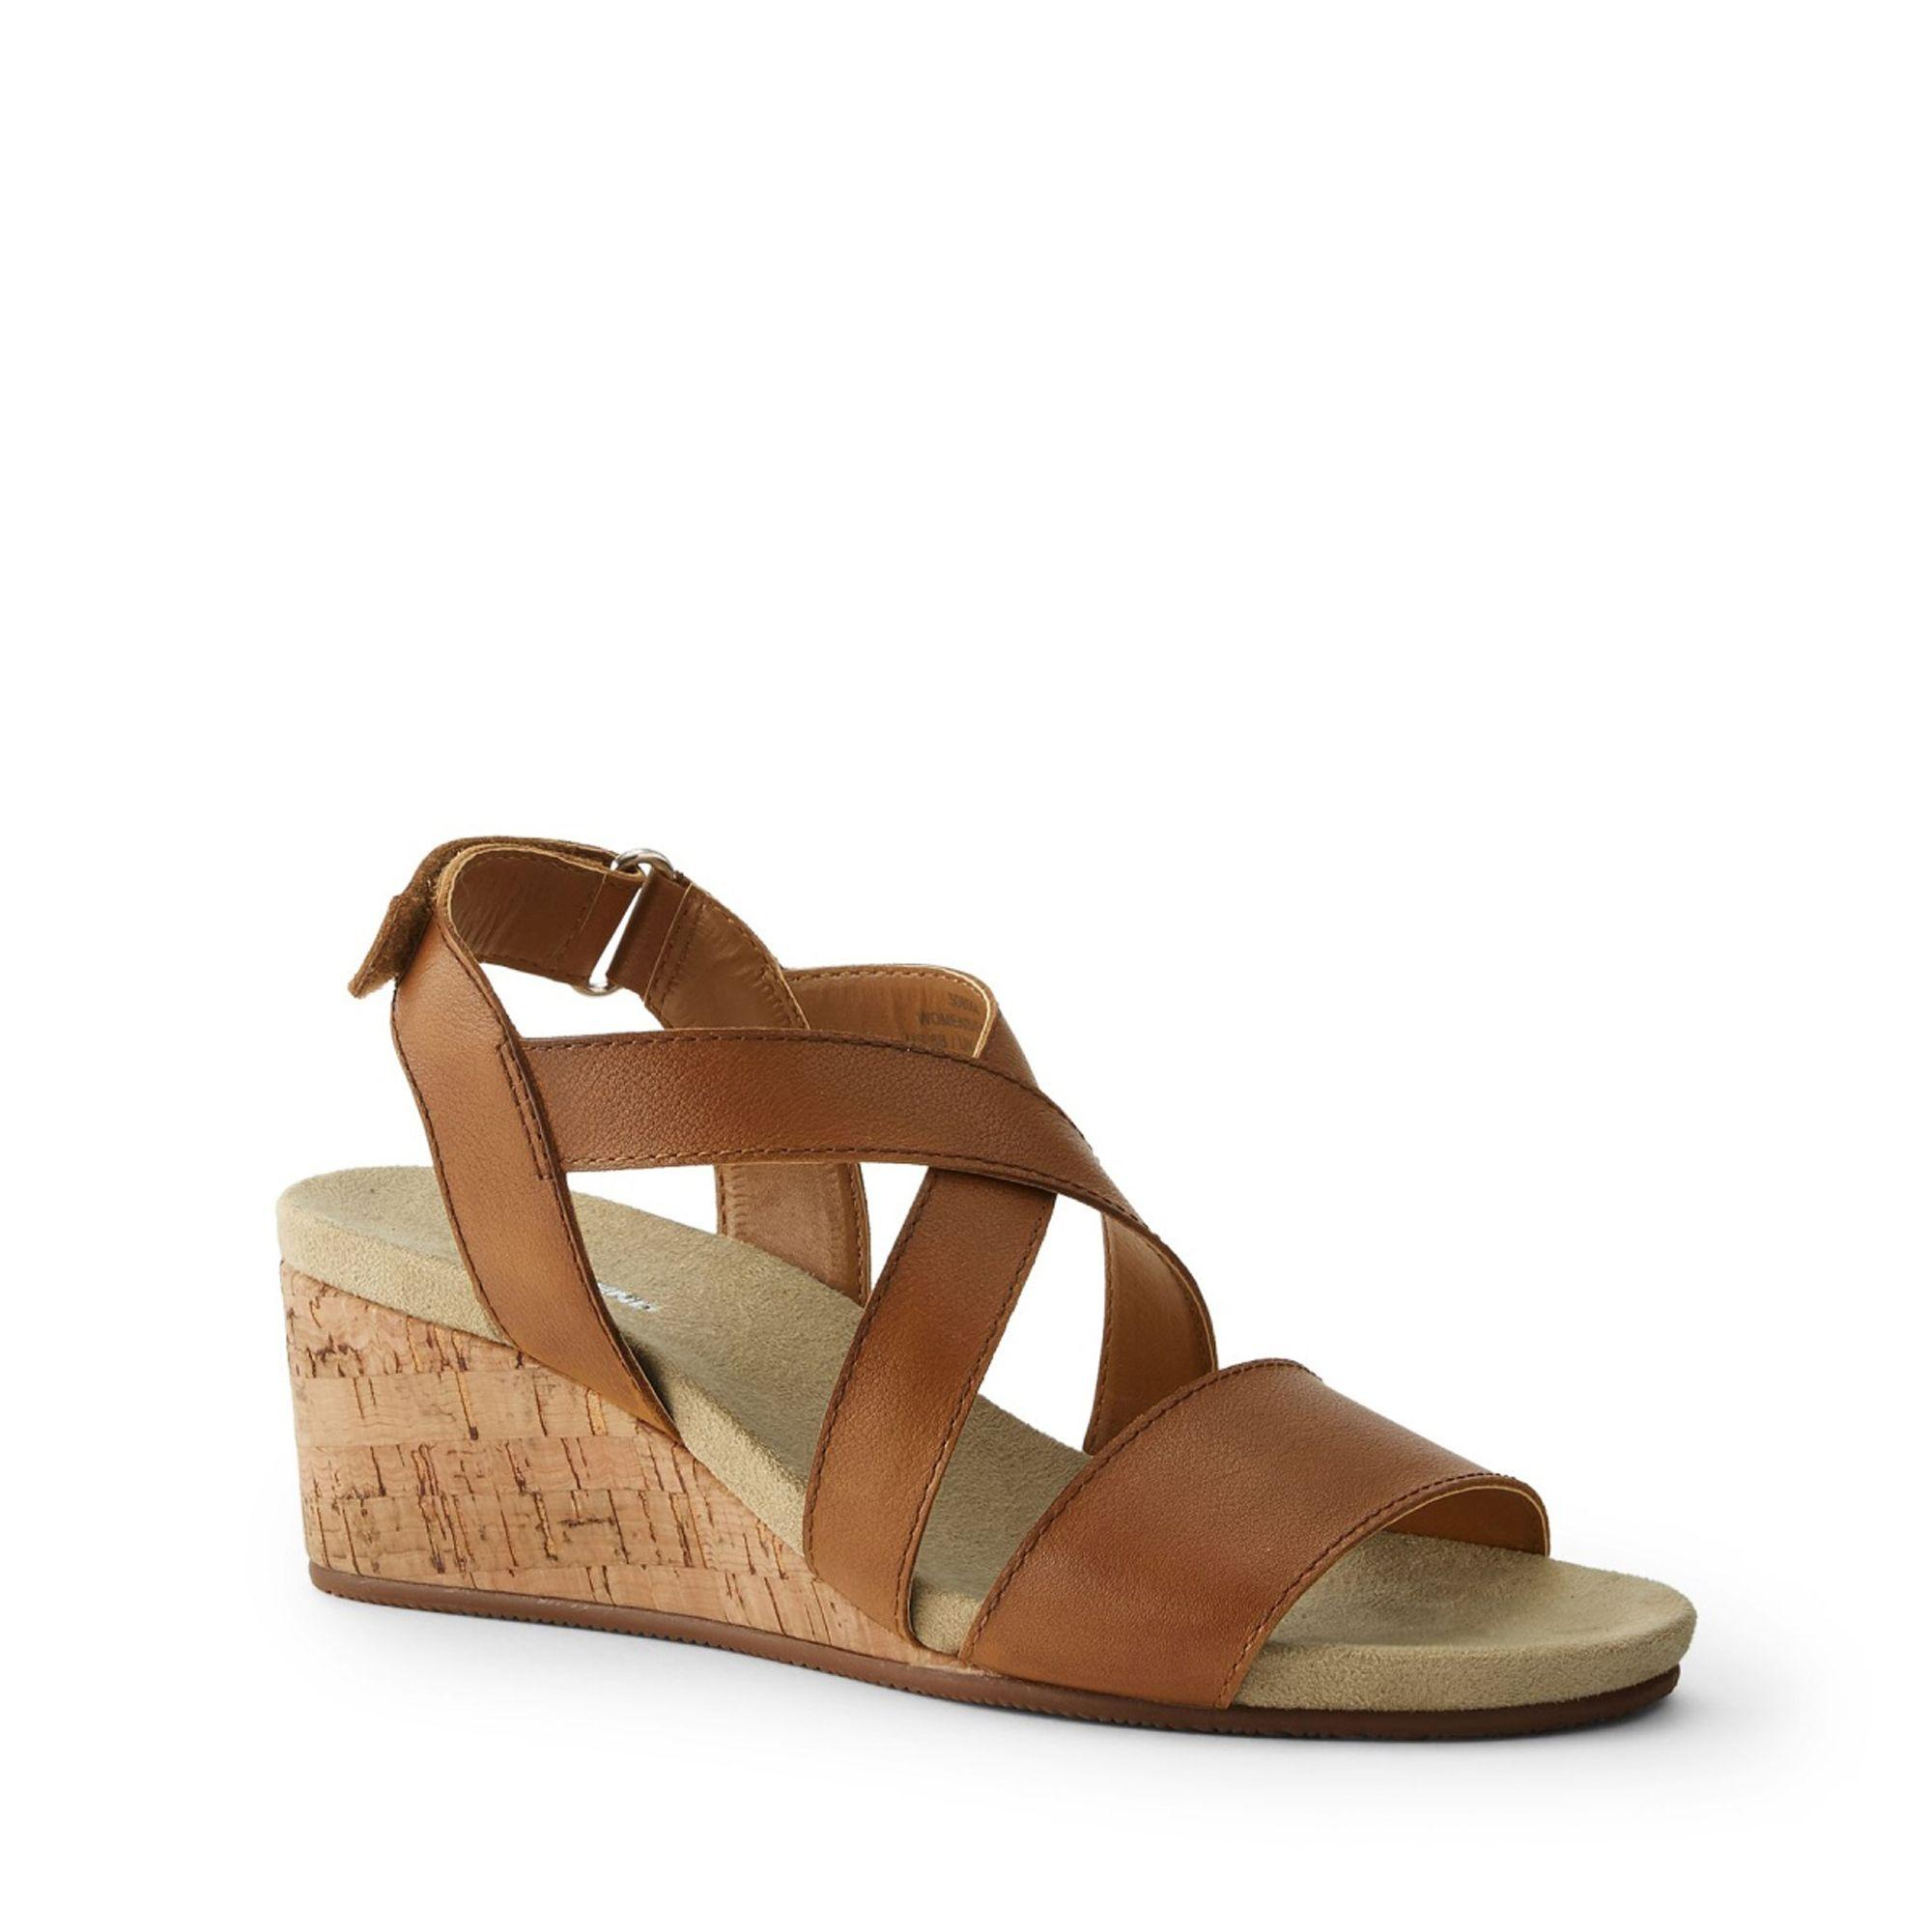 8516f4a2a16e Lands  End Tan Leather Cork Wedge Sandals in Brown - Lyst